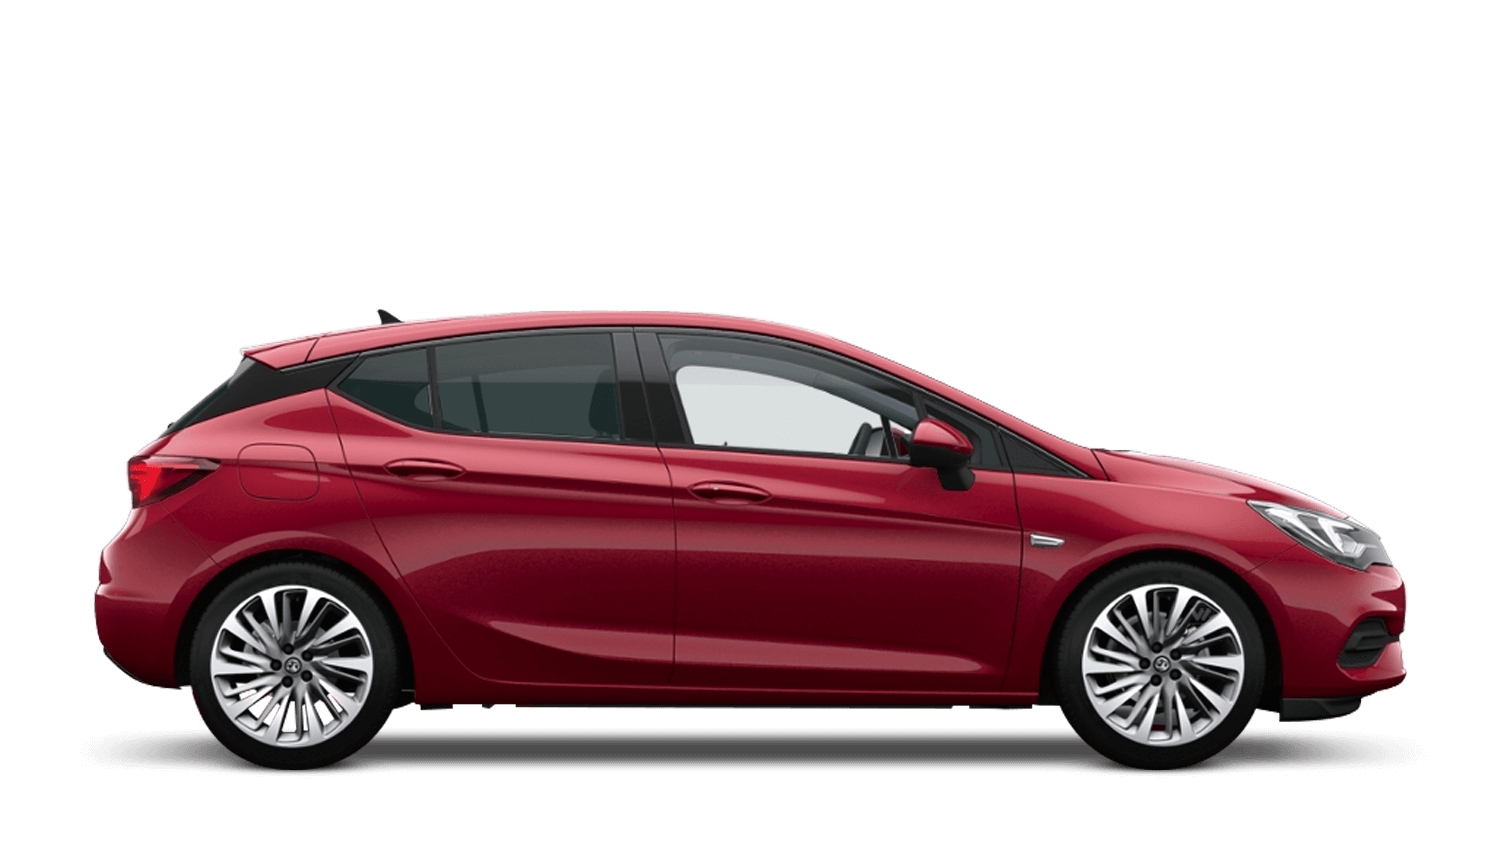 Hot Red (Premium) Vauxhall Astra